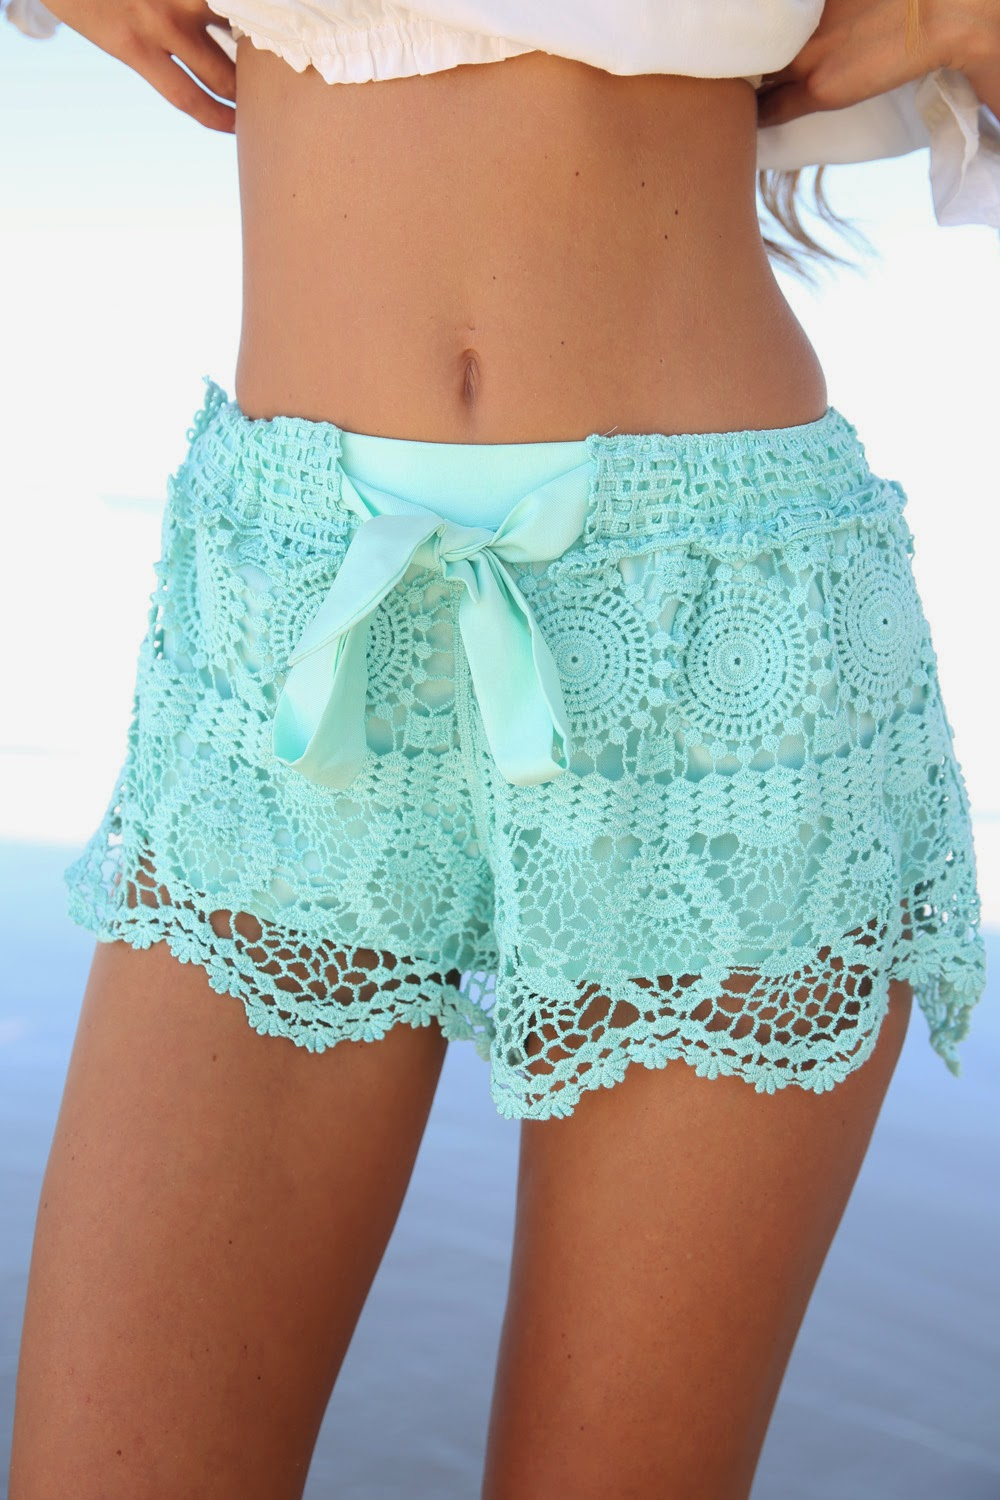 Best Selling Milla Crochet Shorts Sizes XS s M L | eBay